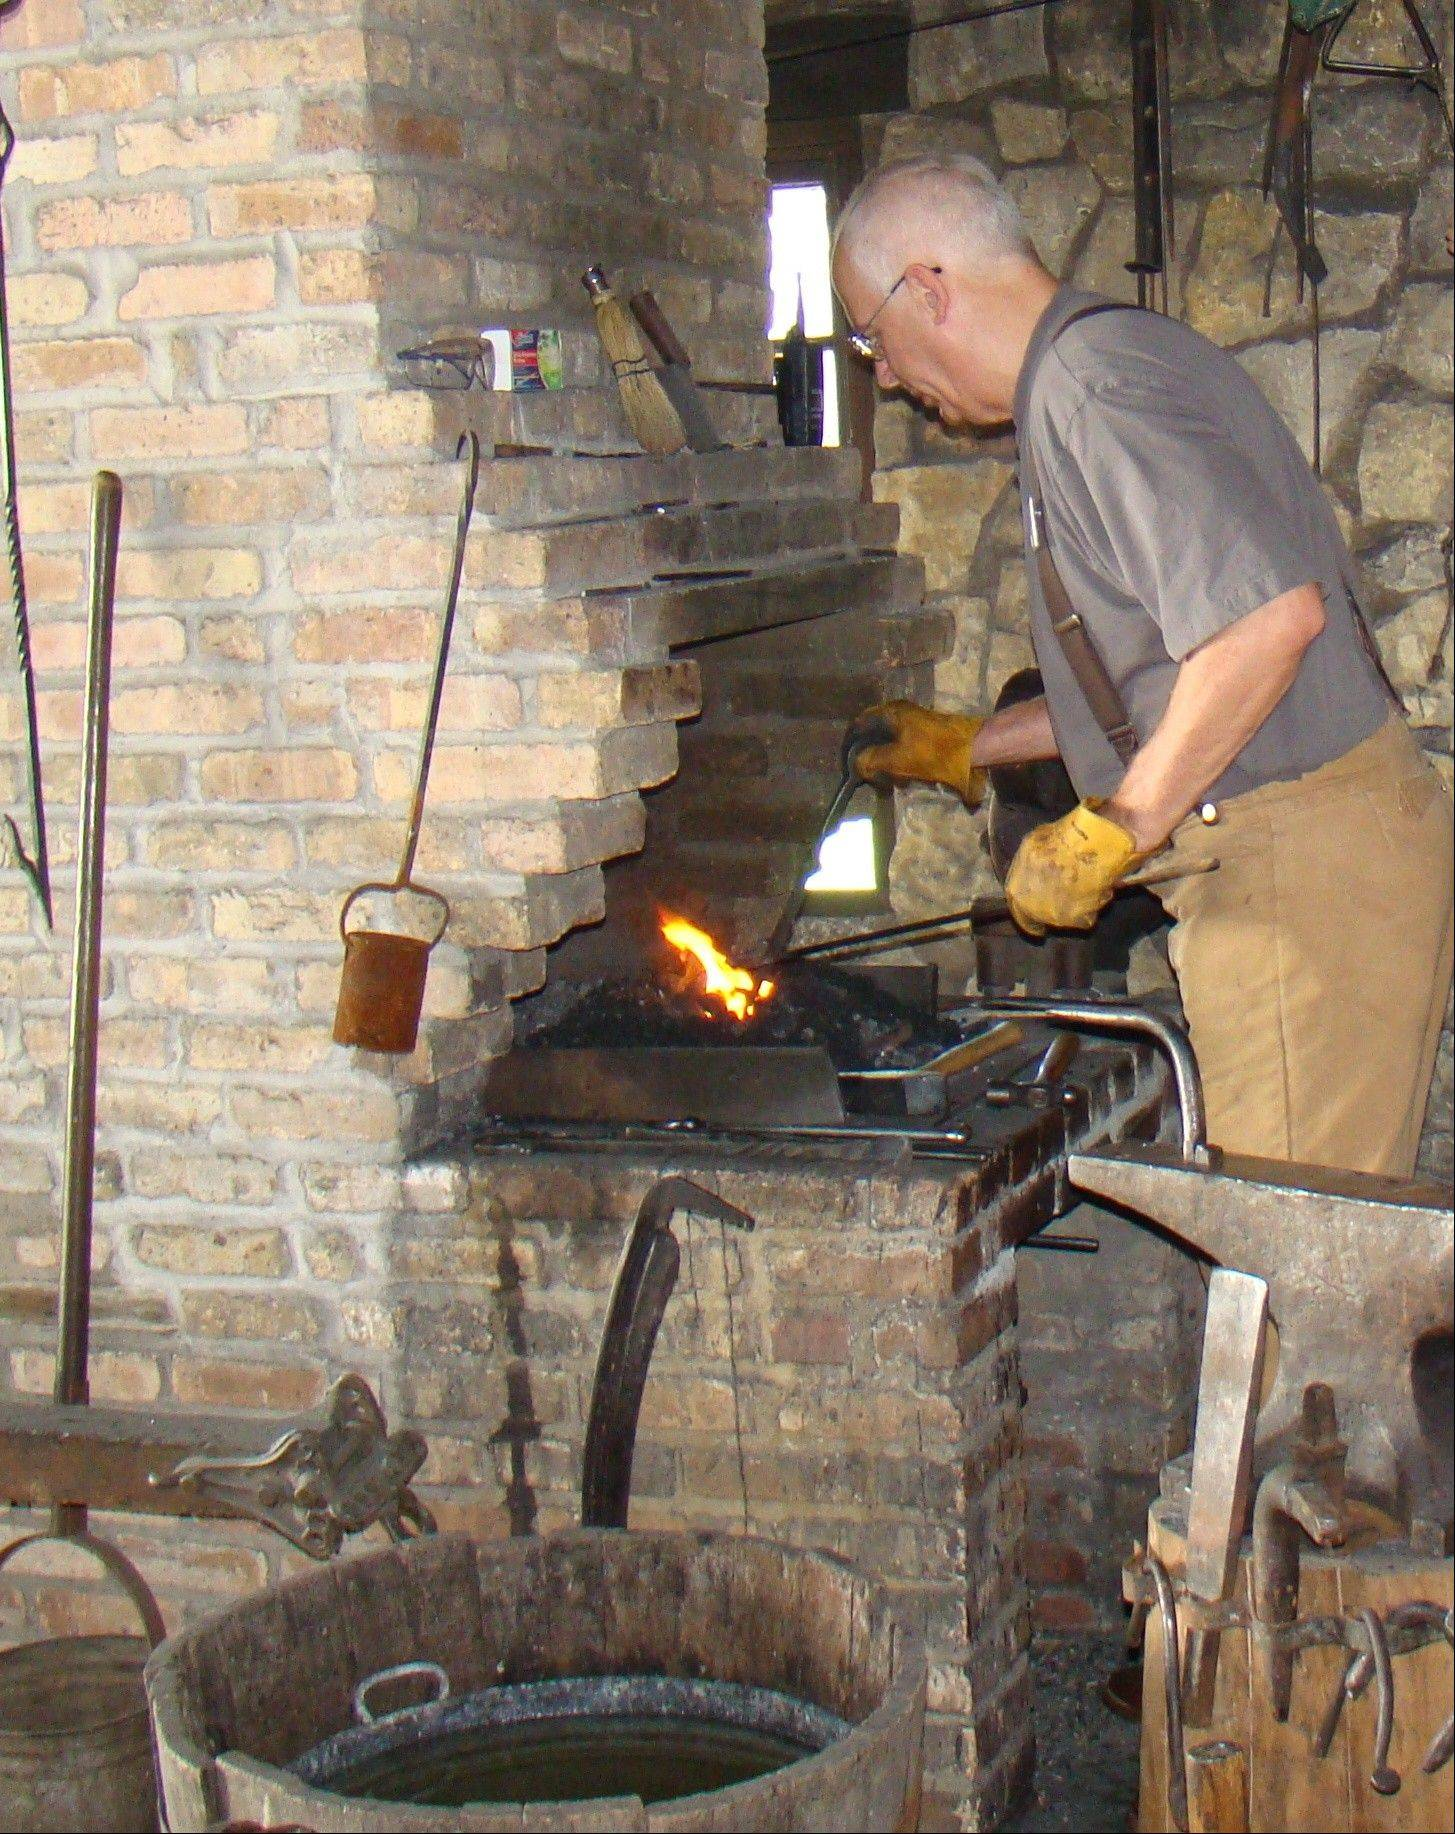 Greg Merriam works in the blacksmith shop, one of the many volunteer opportunities available at Naper Settlement.